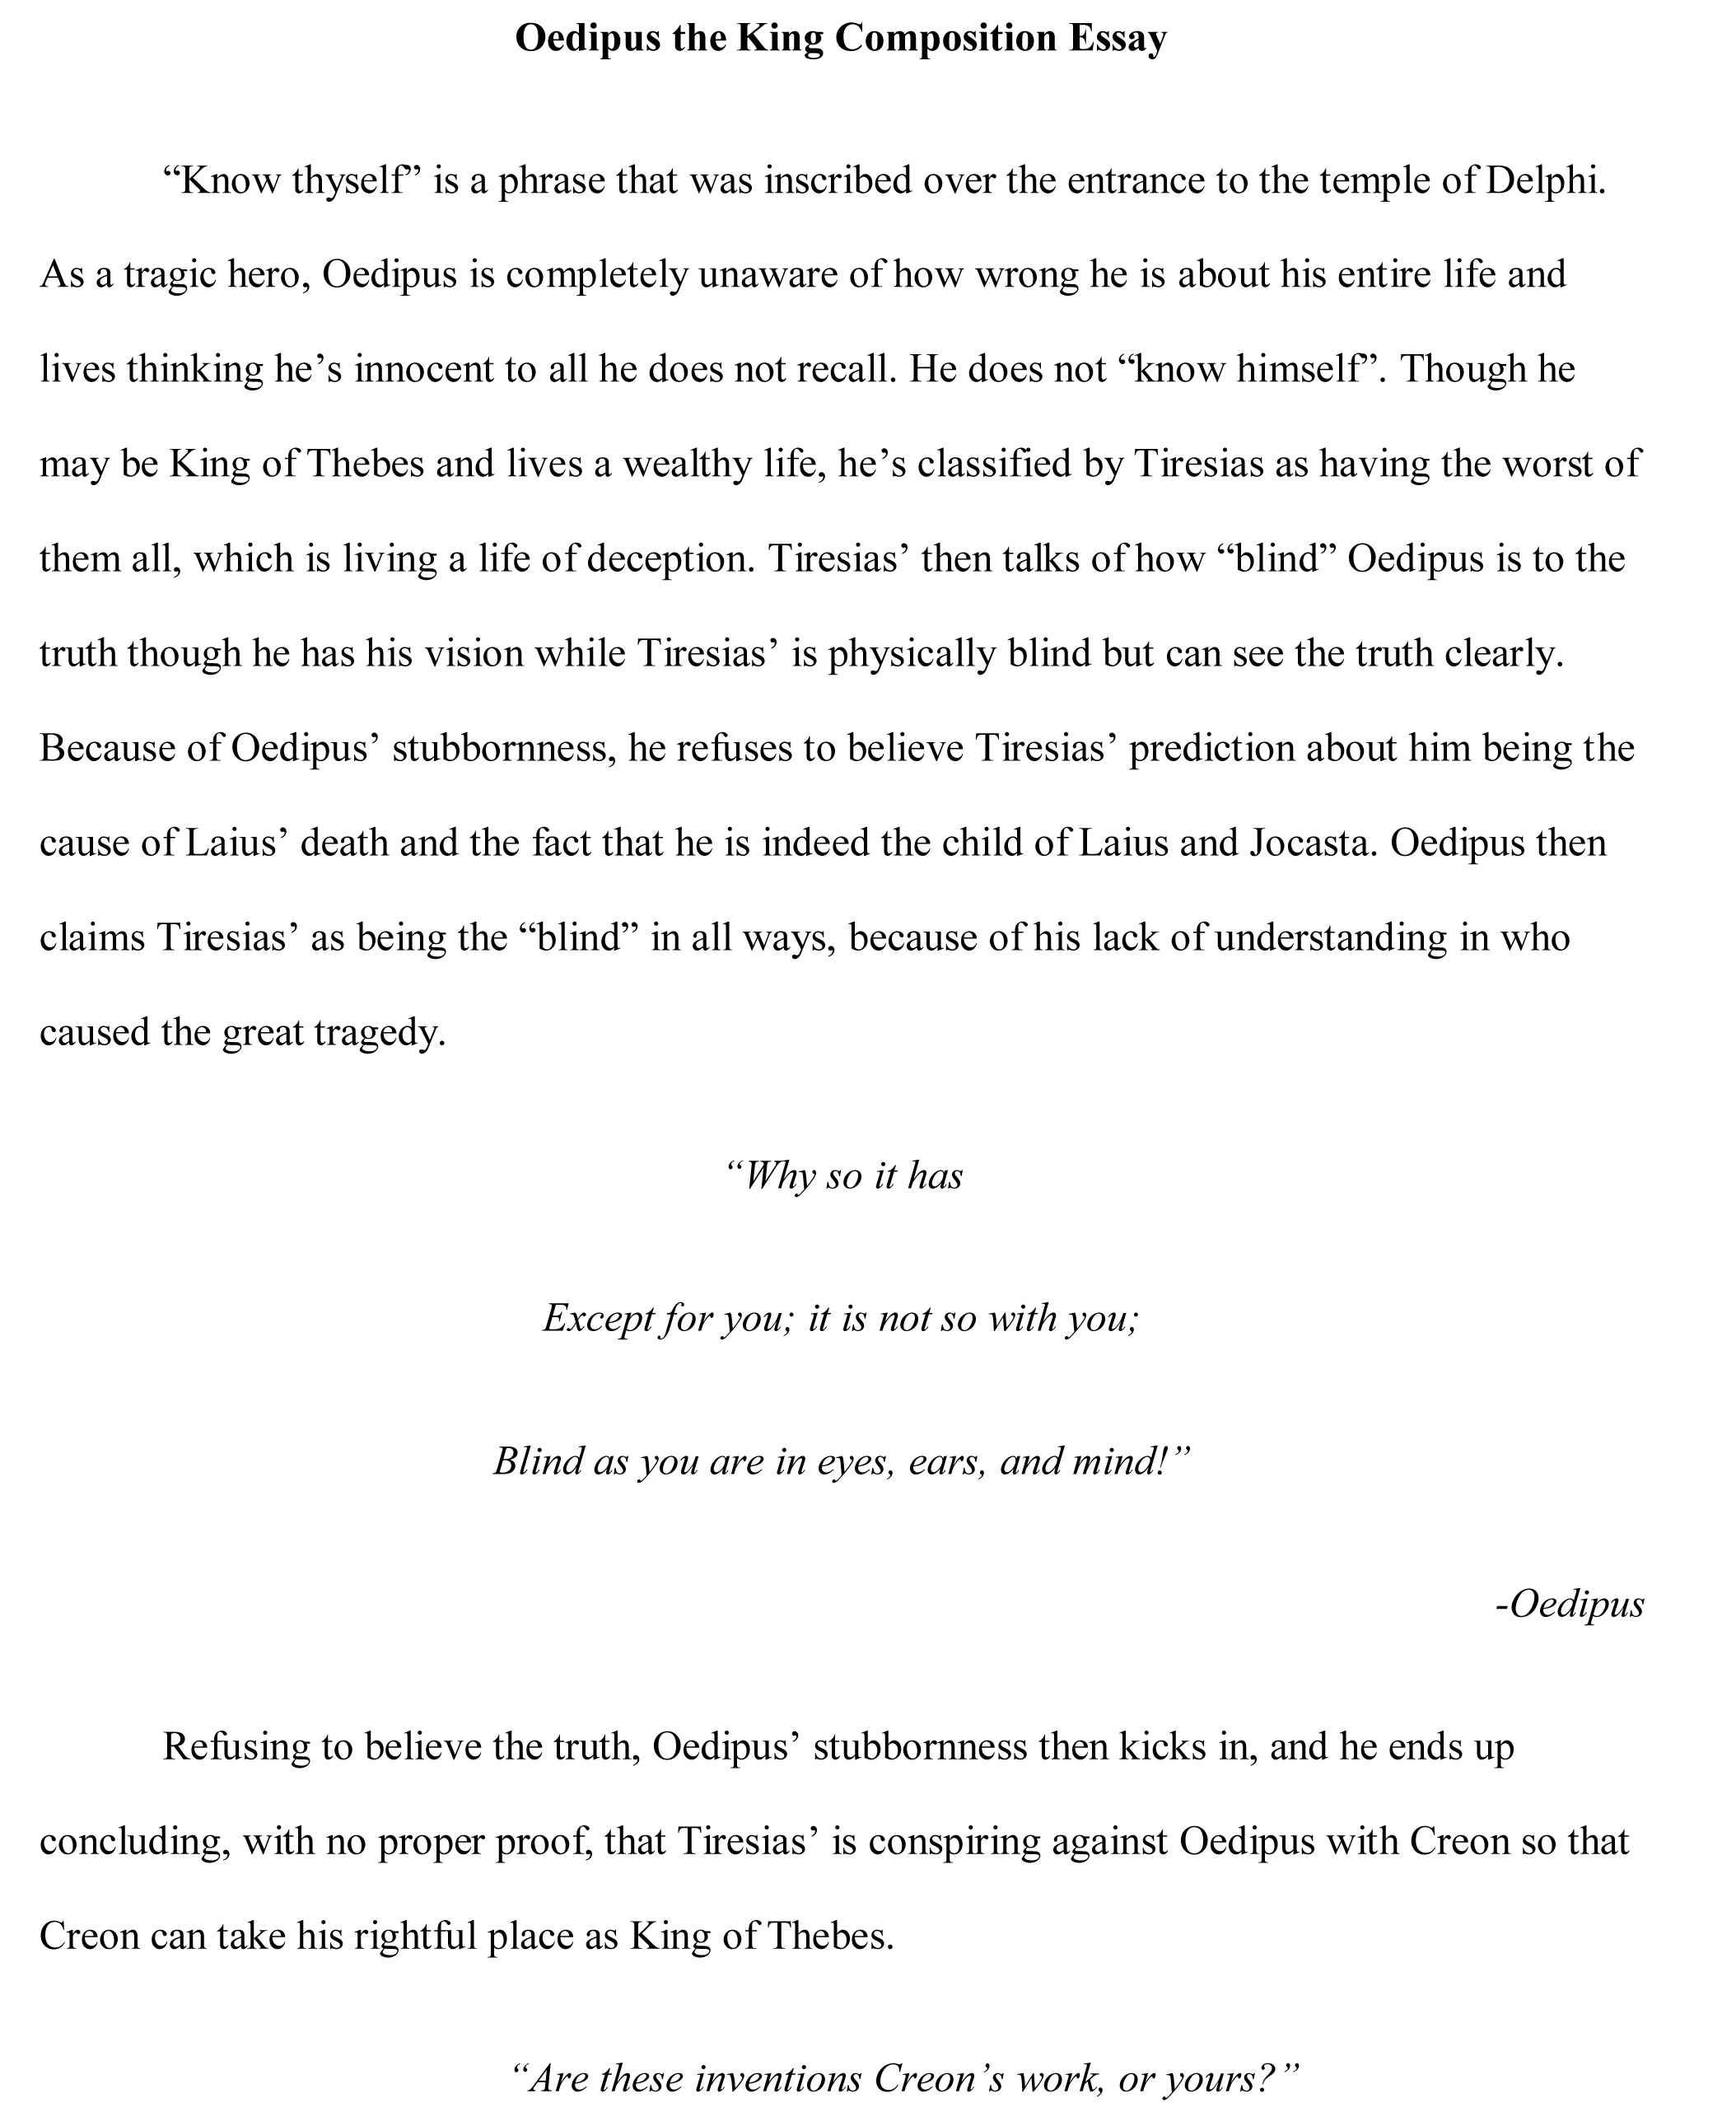 007 Oedipus Essay Free Sample How To Write Persuasive Introduction Wonderful A Example Full